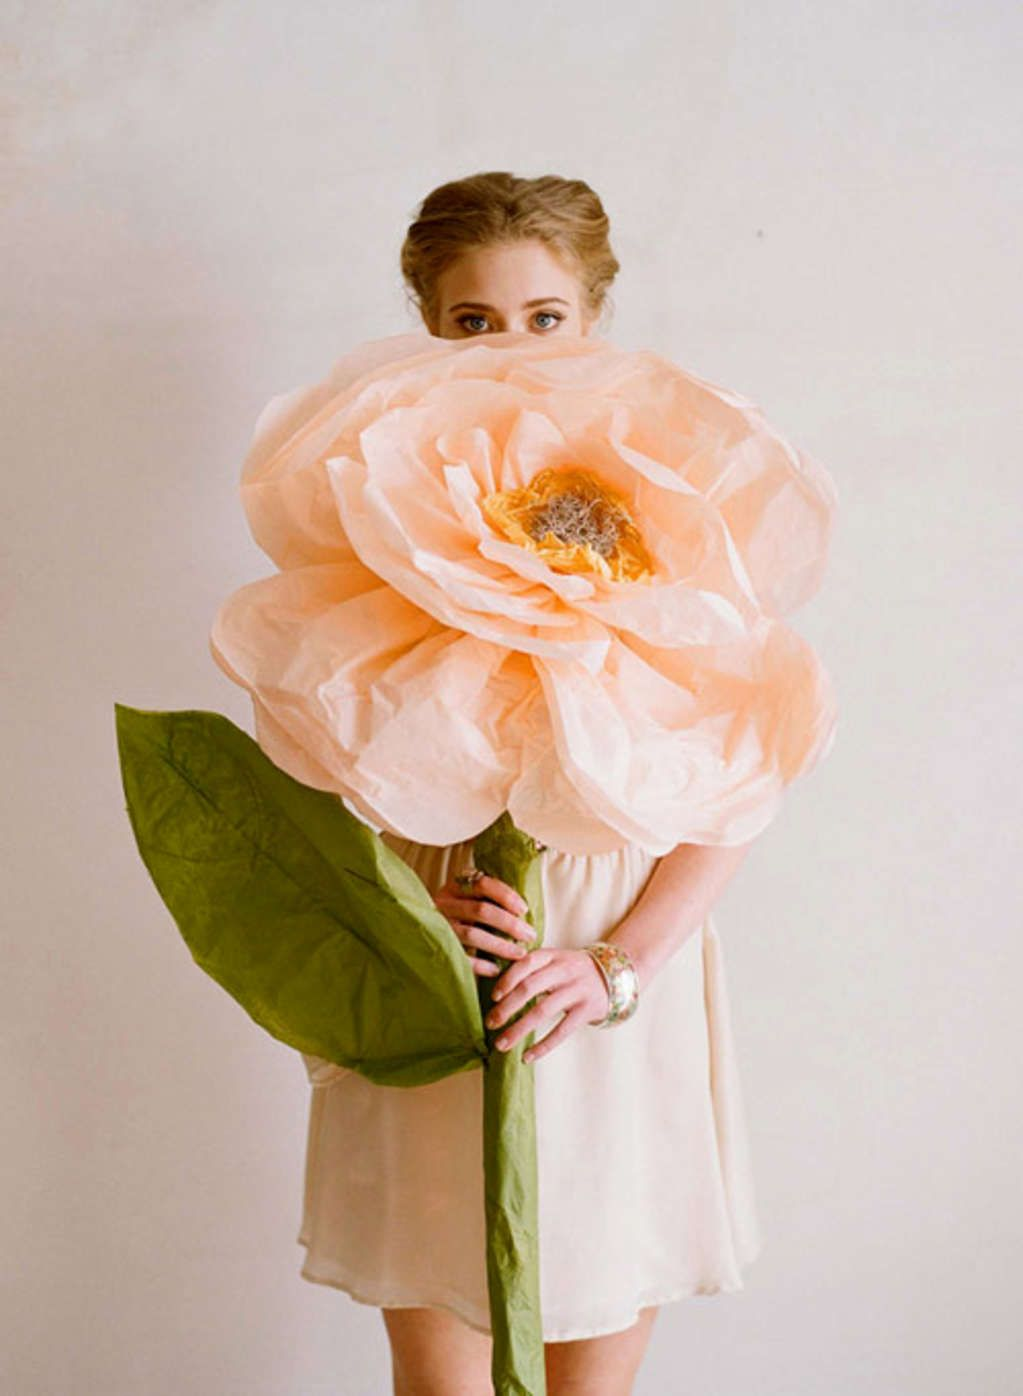 DIY Giant Paper Flowers #giantpaperflowers